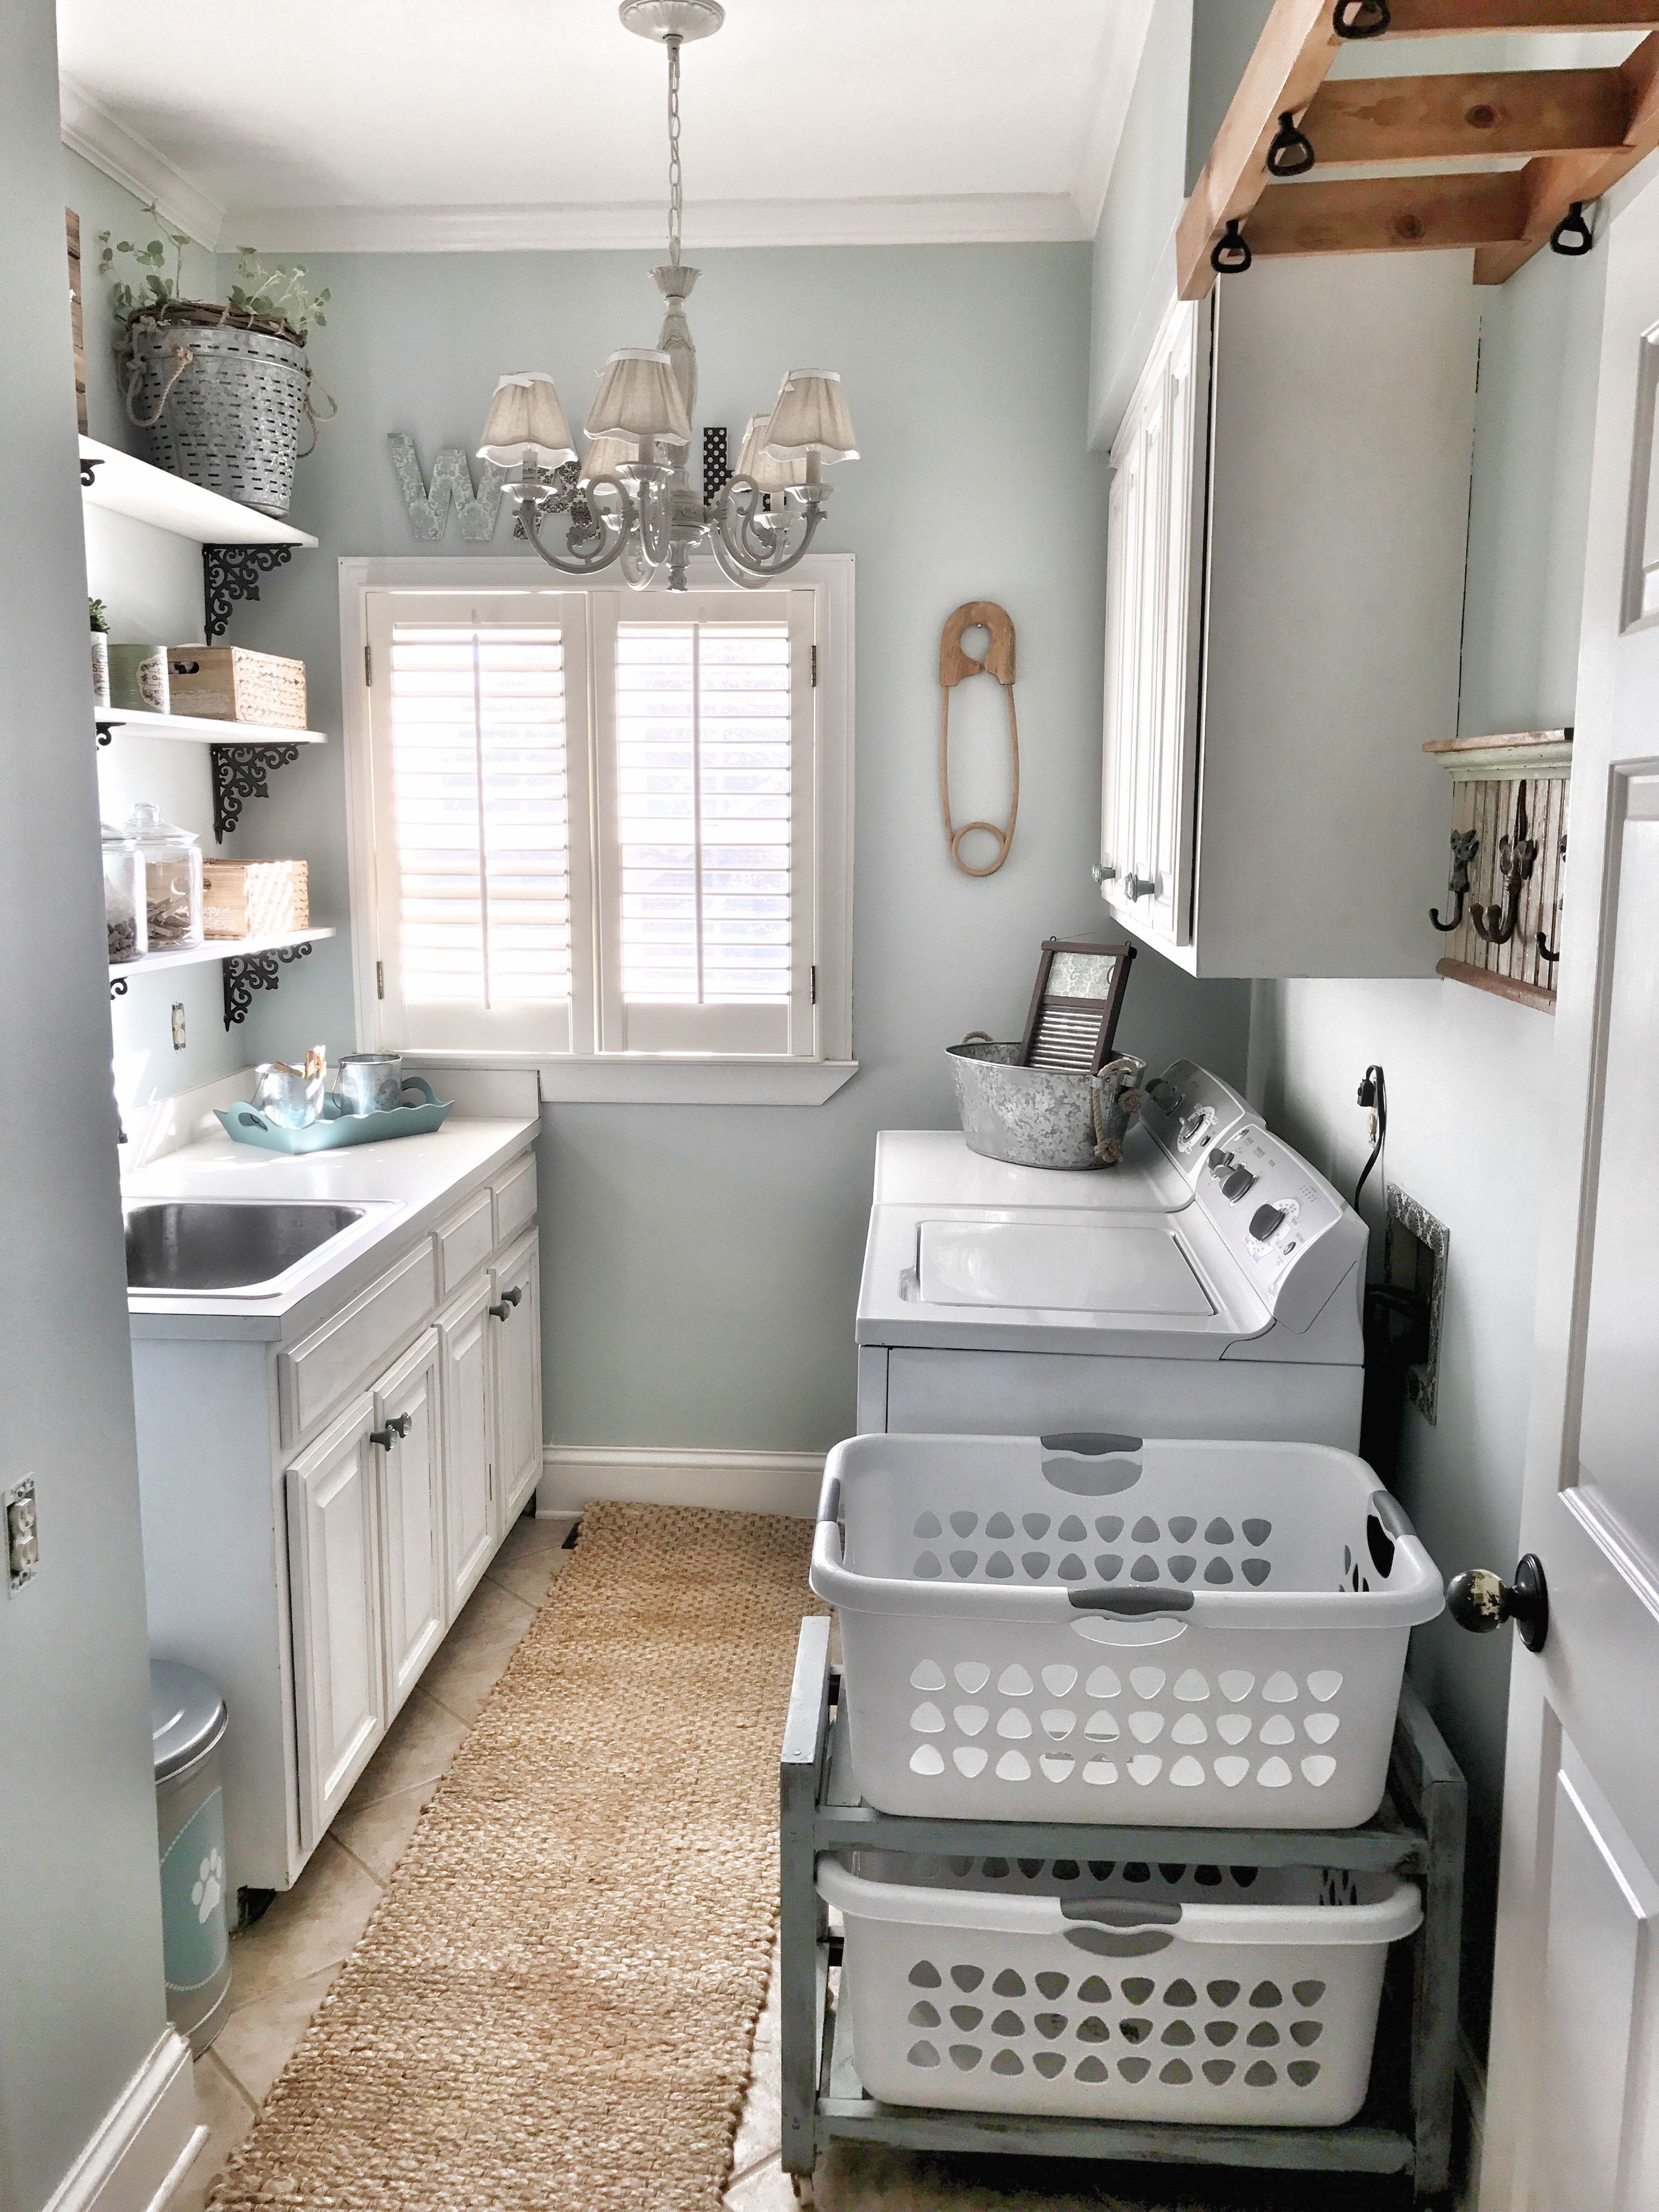 I Love Every Detail Of This E The Runner Hooks On Wall Beautiful Light Fixture White Cabinets Blue Walls All It